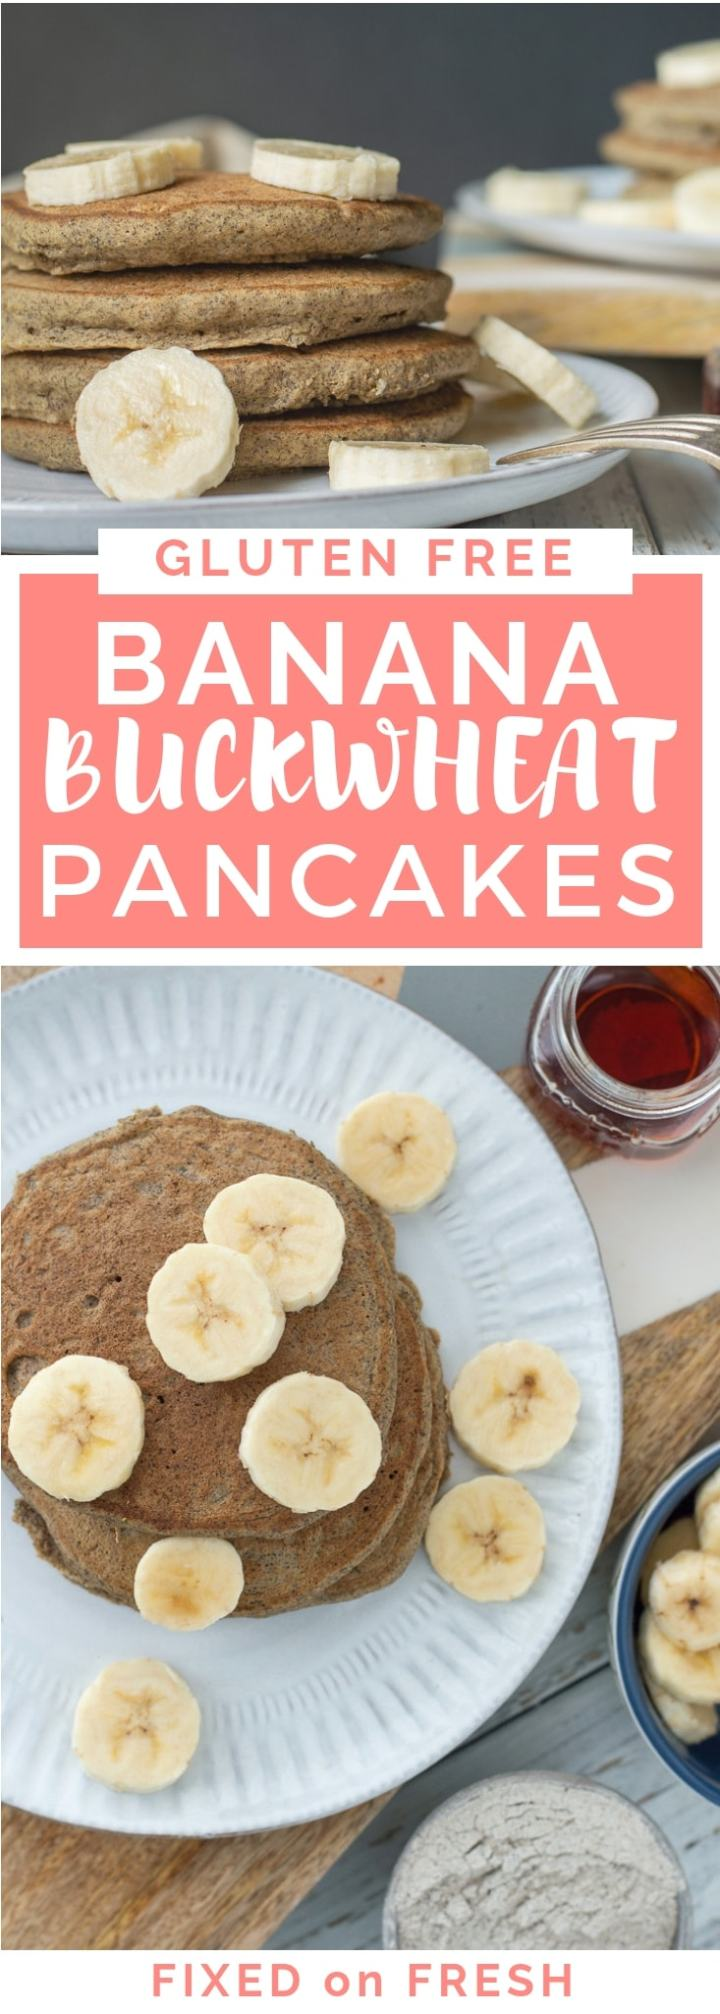 Gluten Free Banana Buckwheat Pancakes are an awesome healthy breakfast that is a great way to make use of leftover bananas.